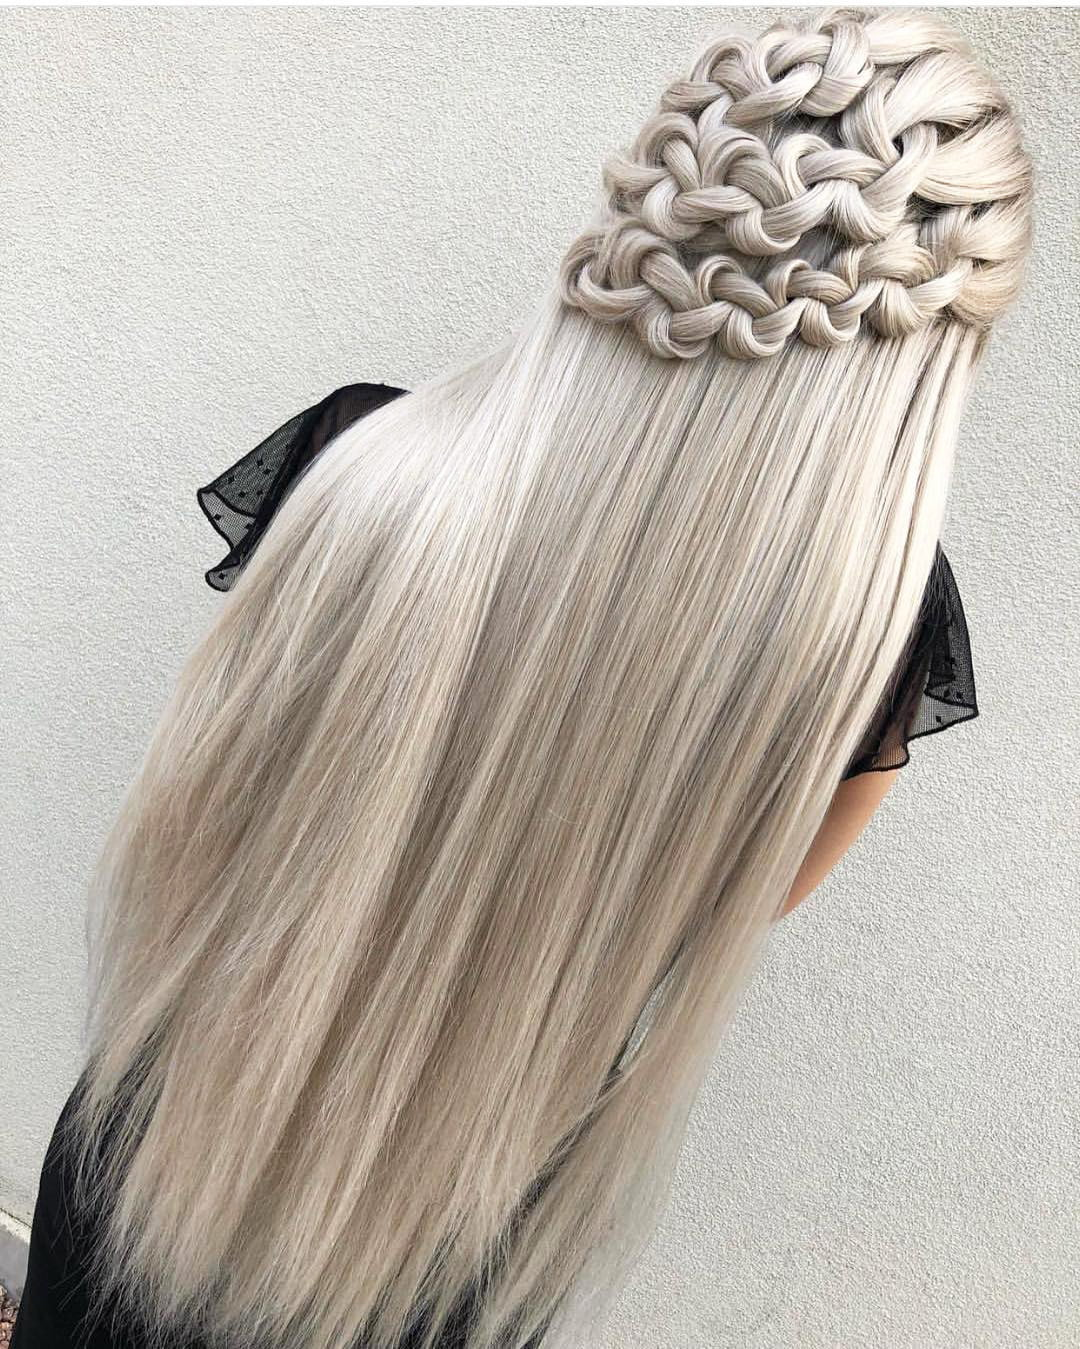 70 Top Hairstyles for Long Thin Hair in 2020 For Women (80)